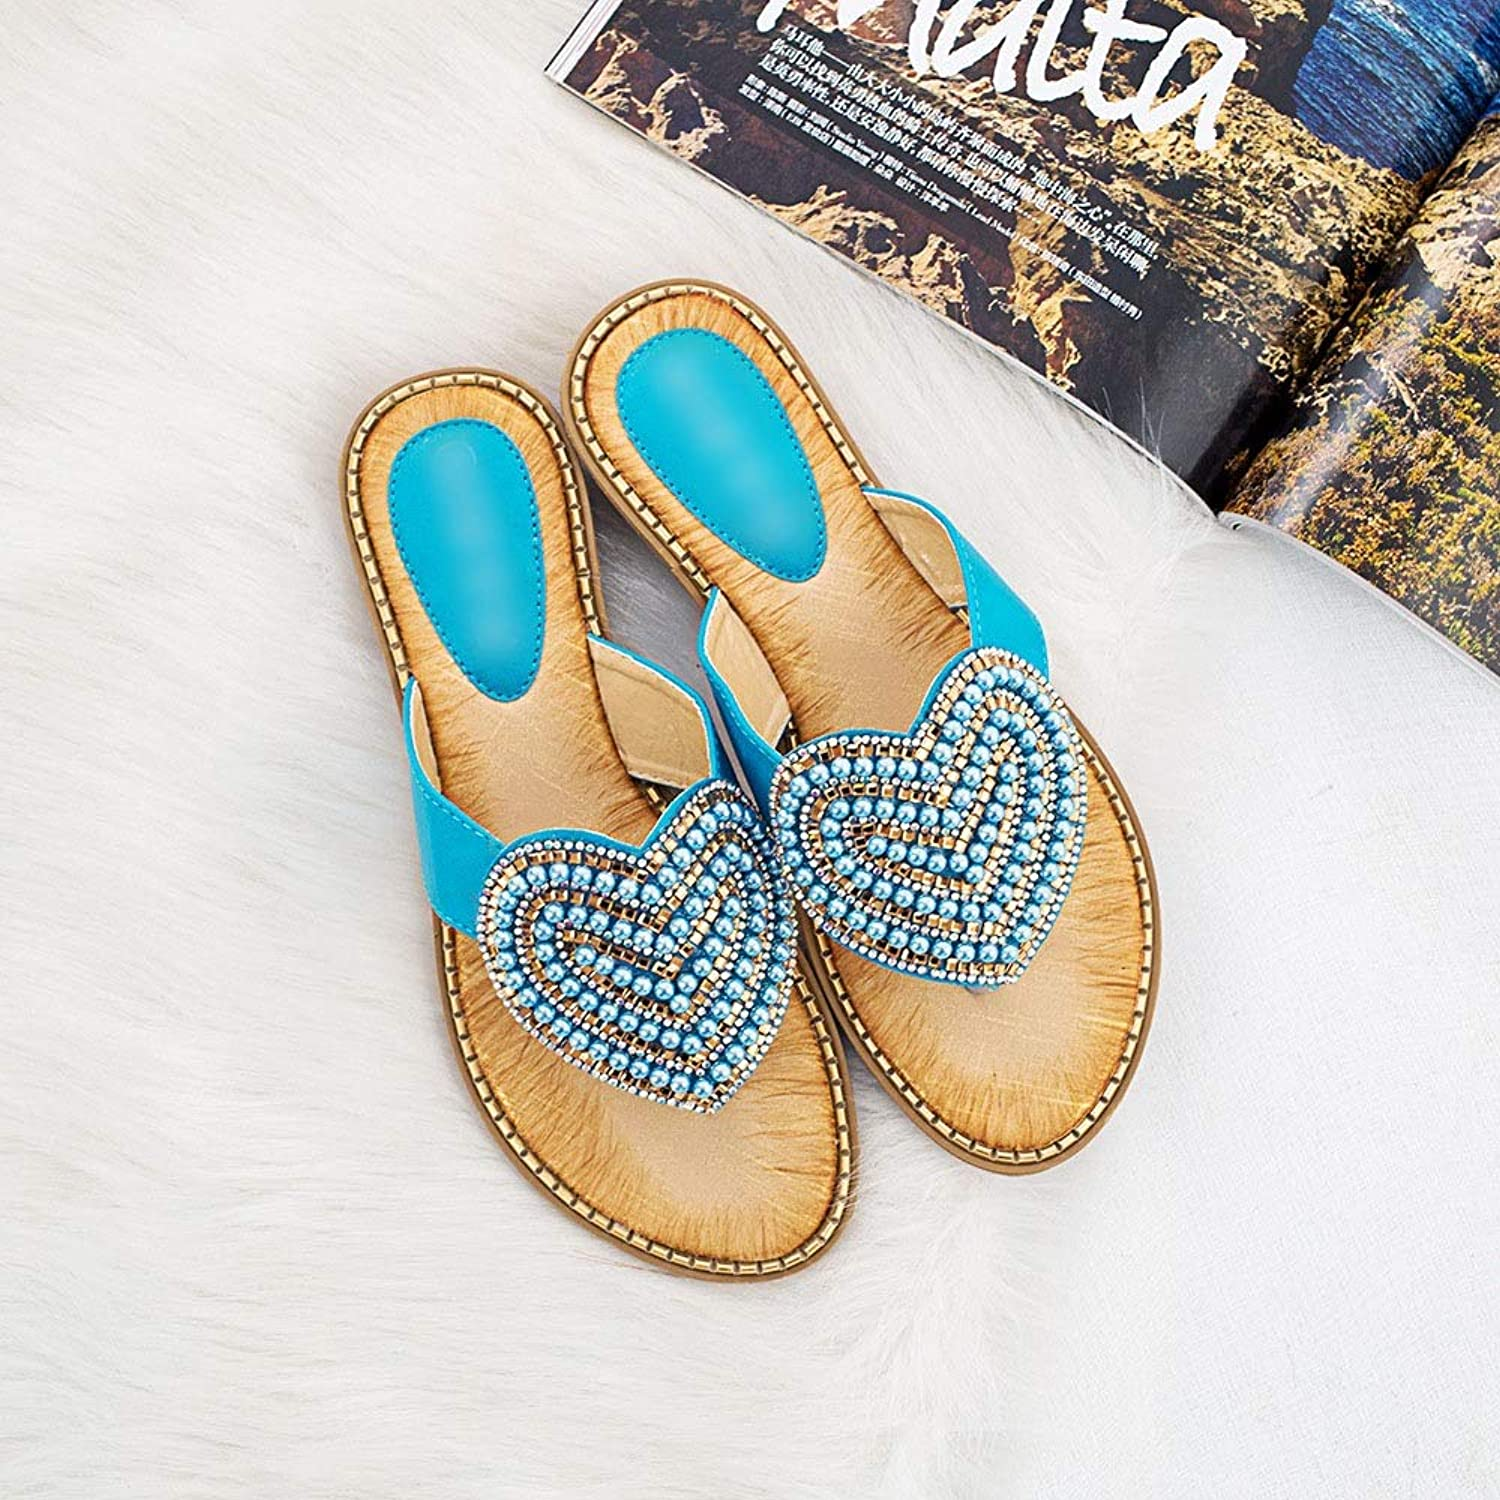 WENNEW Breathable Sandals Rhinestone Pearl Women's shoes Toe Sandals Fashion shoes